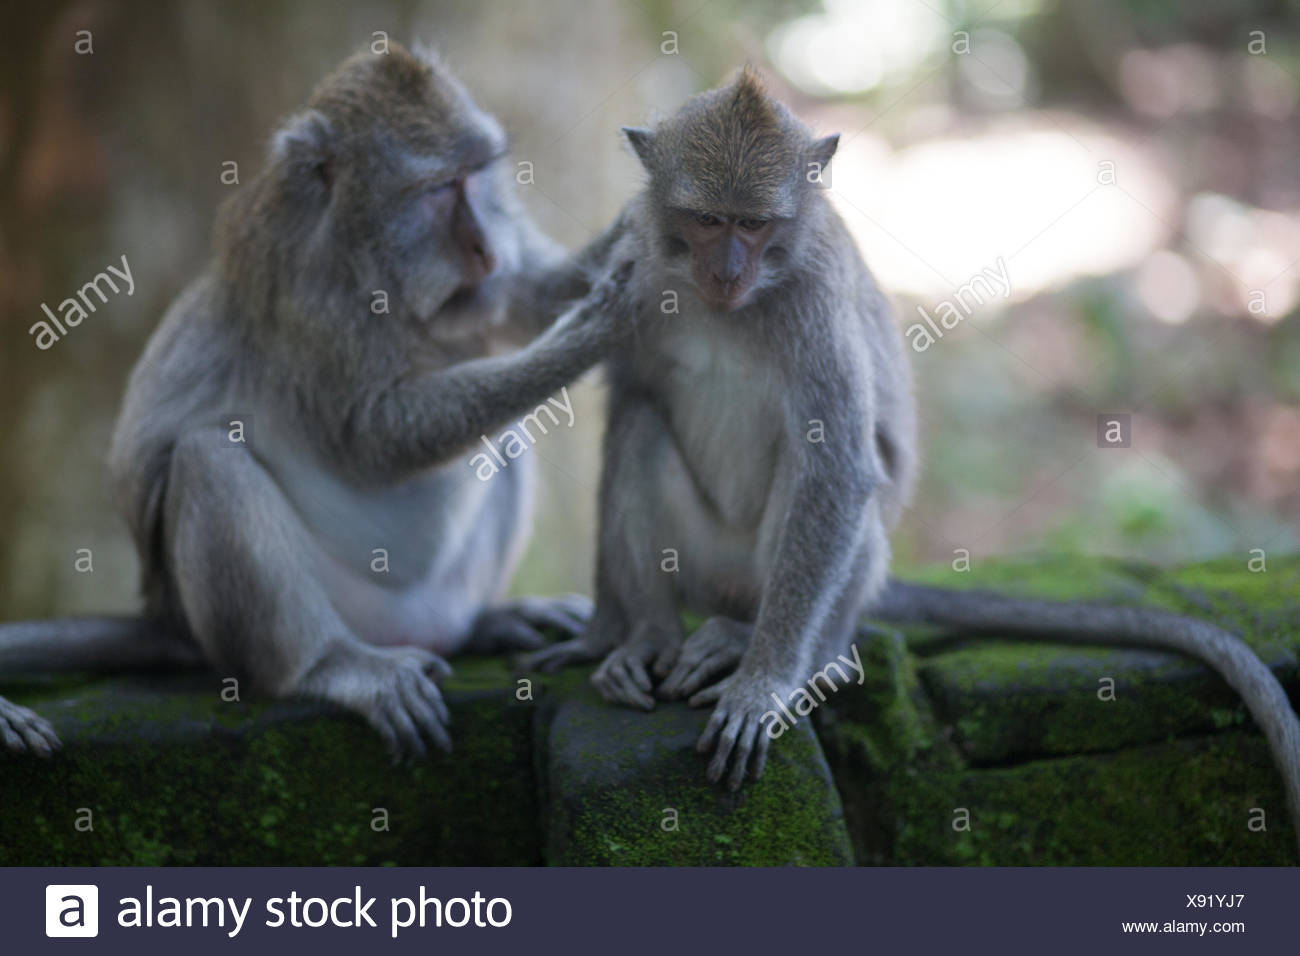 Monkey Getting Loused By Another - Stock Image